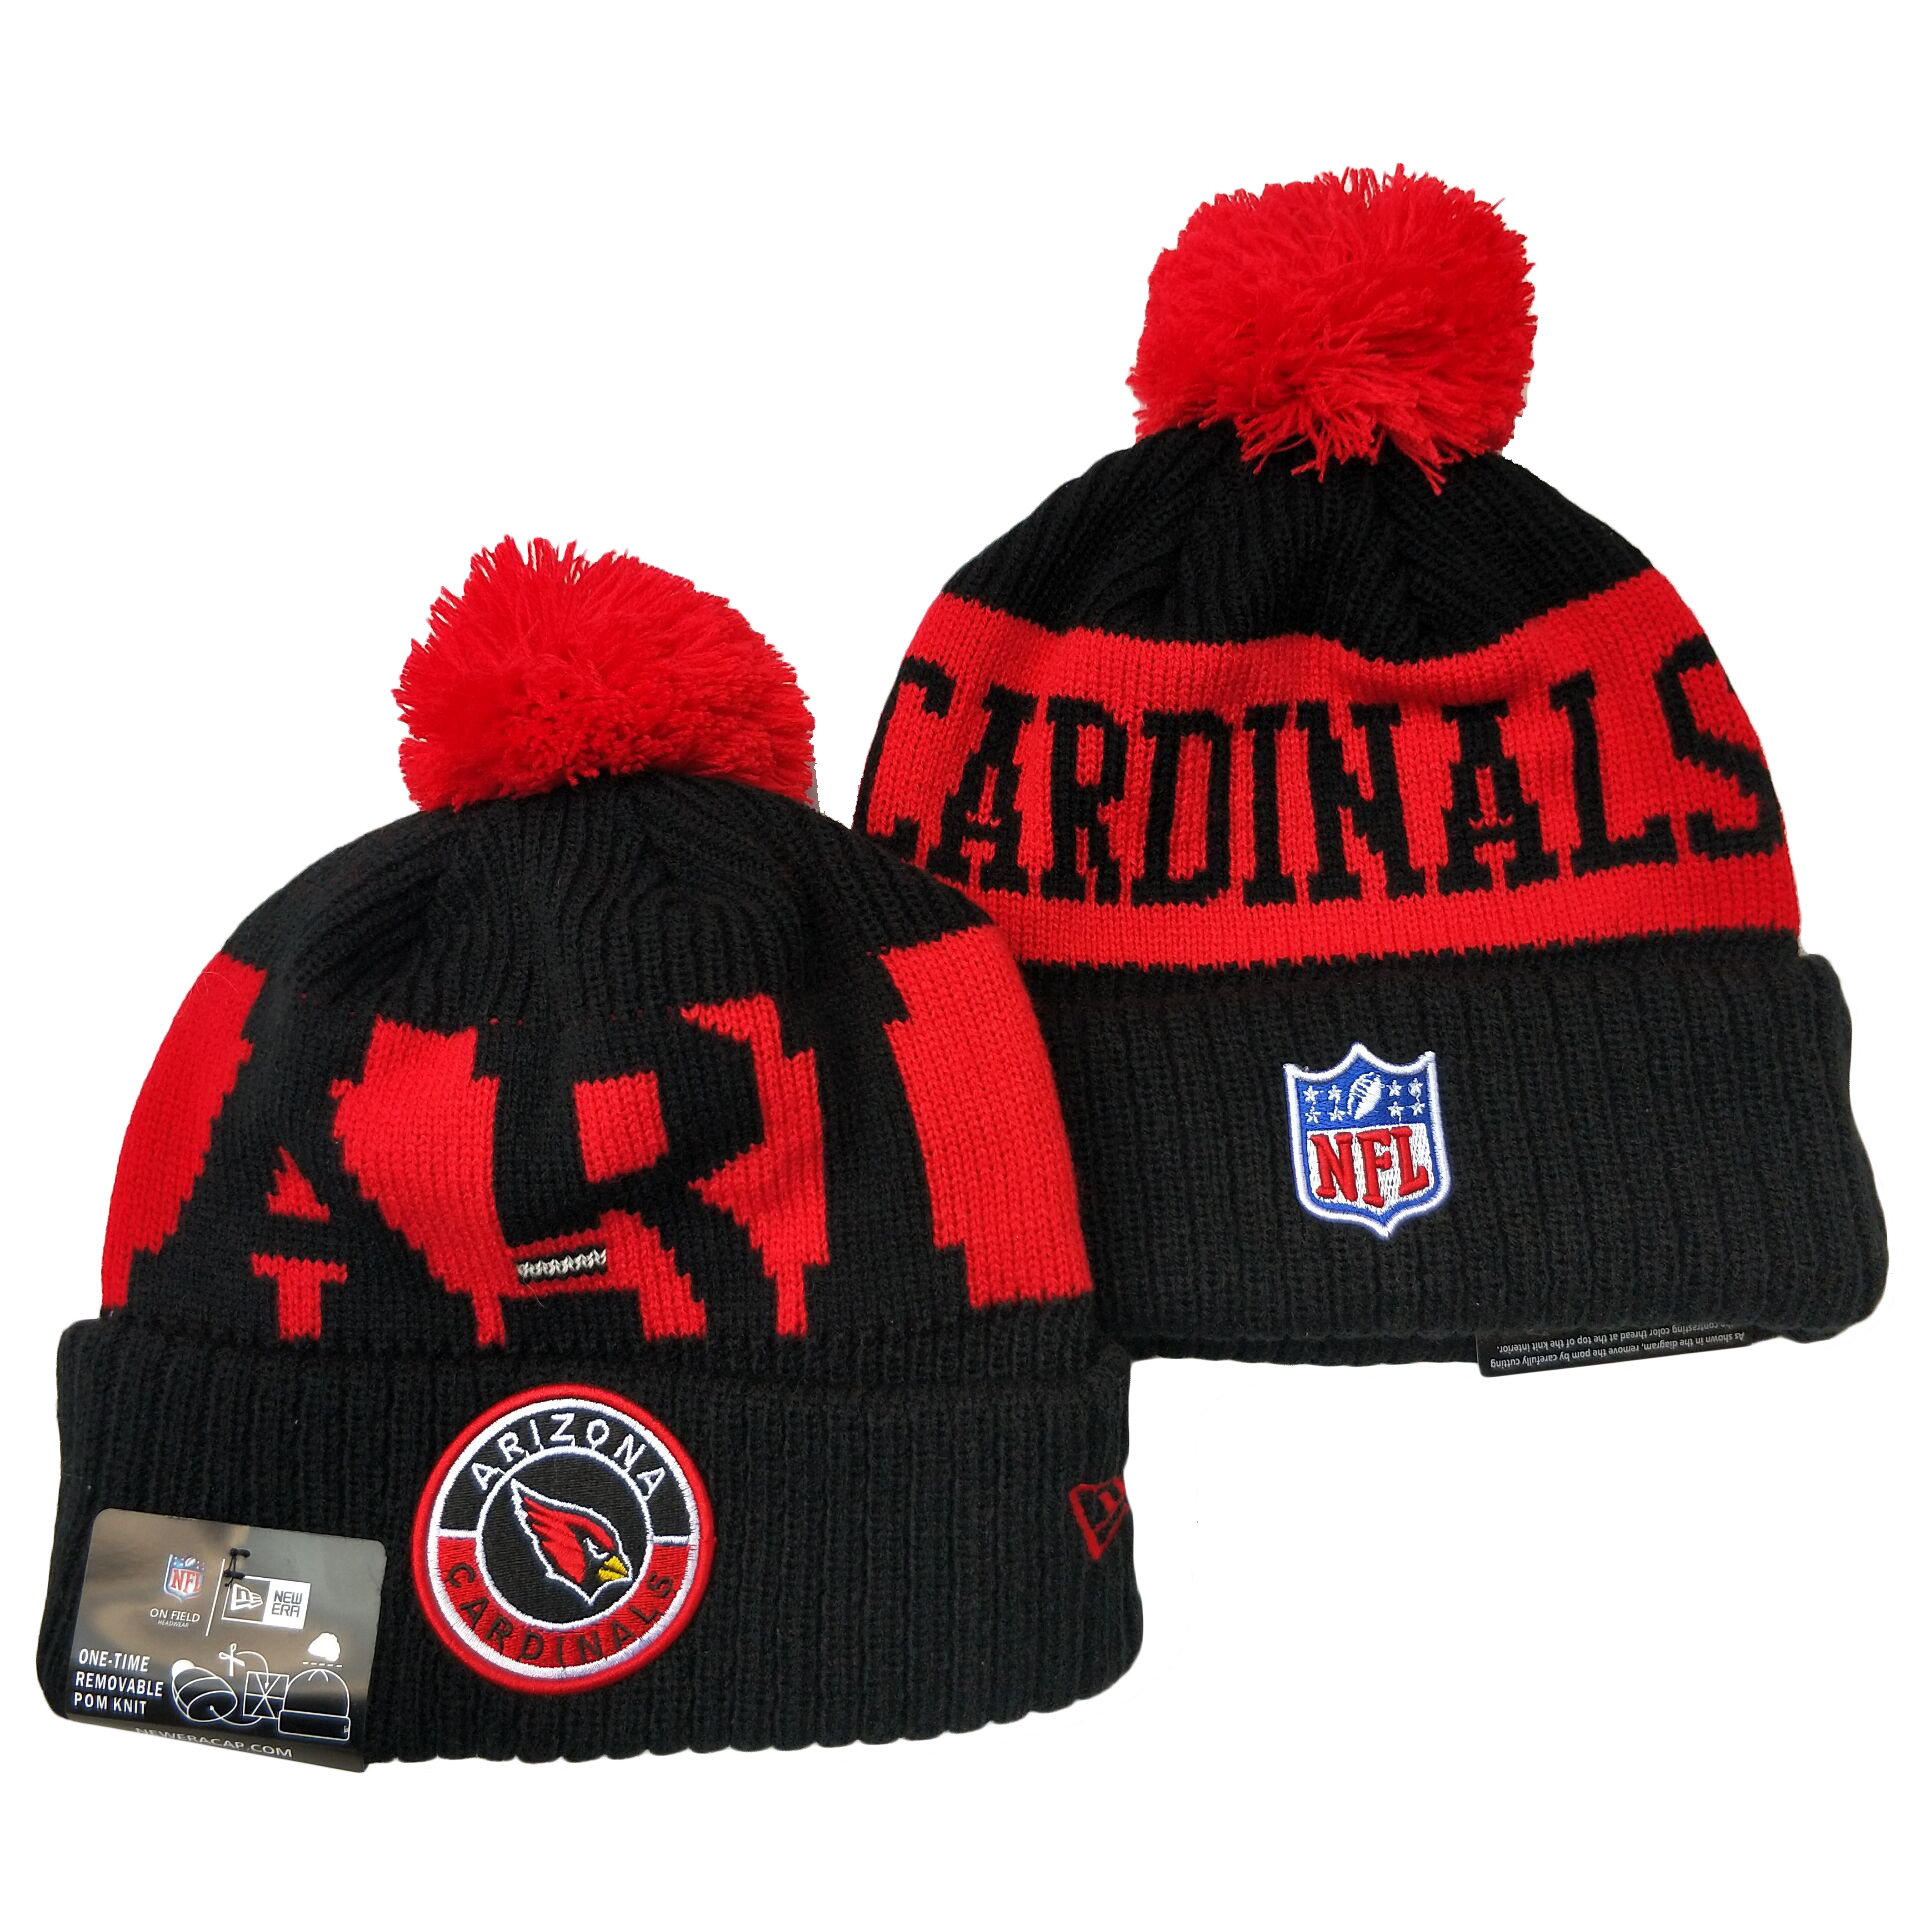 Arizona Cardinals Knit Hats 034